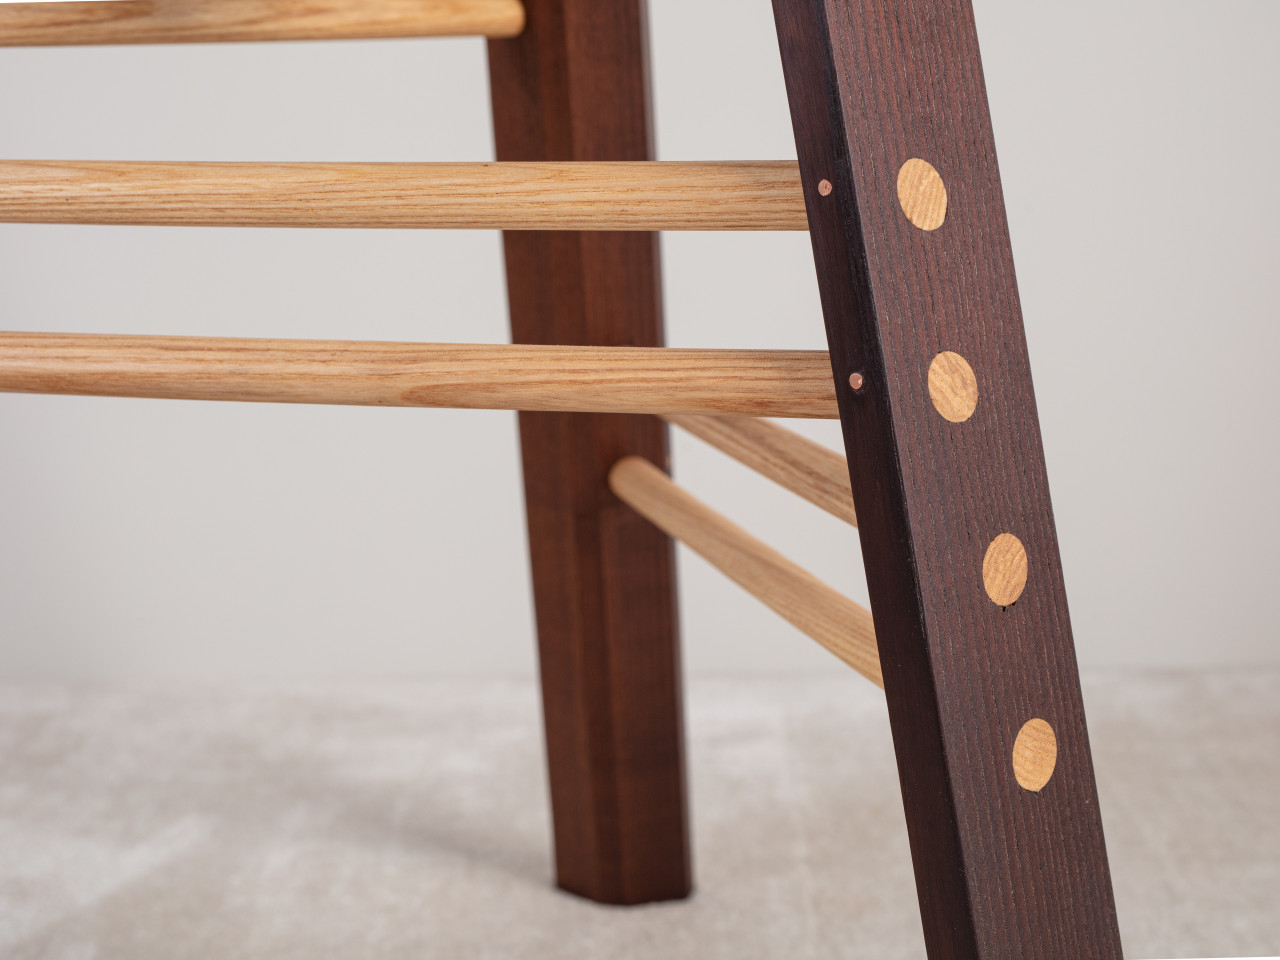 stool chairs detail